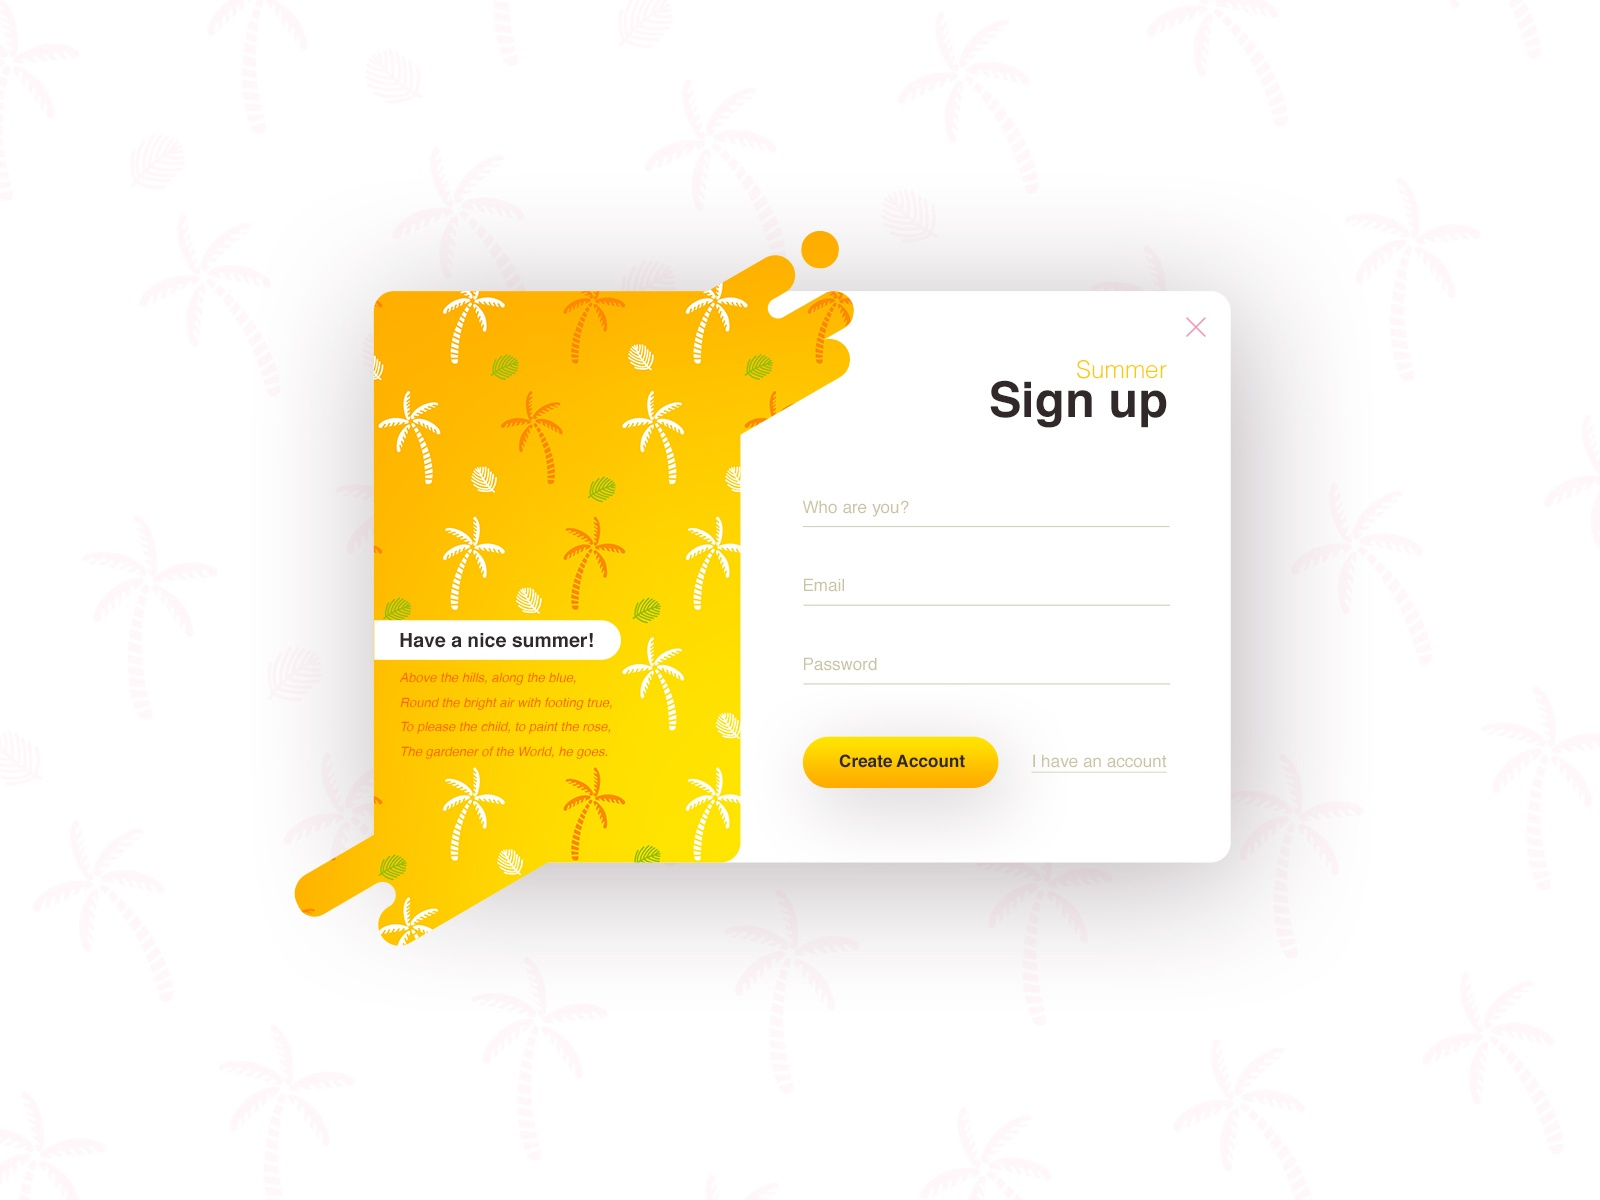 Sign-up Forms (season series) №3 - Summer